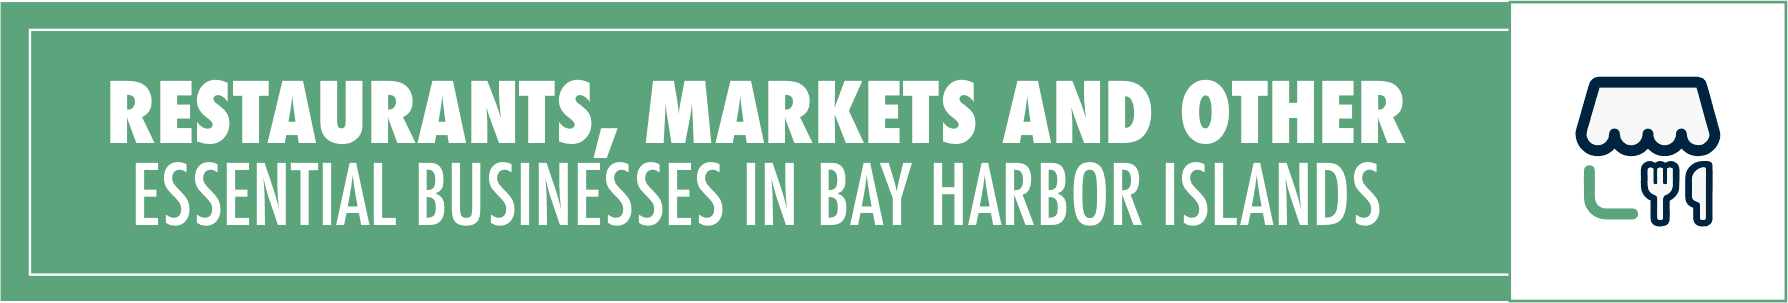 RESTAURANTS, MARKETS AND OTHER  ESSENTIAL BUSINESSES IN BAY HARBOR ISLANDS